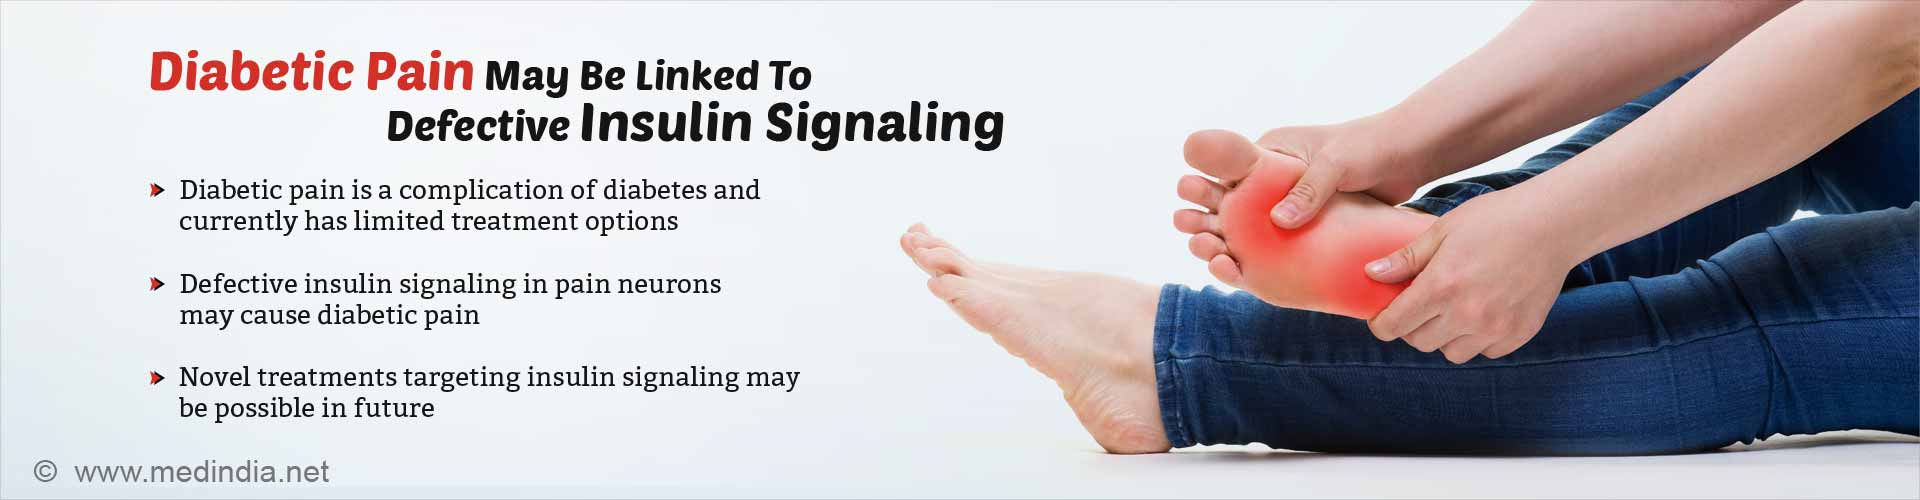 diabetic pain may be linked to defective insulin signaling - diabetic pain is a complication of diabetes and currently has limited treatment options - defective insulin signaling in pain neurons may cause diabetic pain - novel treatments targeting insulin signaling may be possible in the future